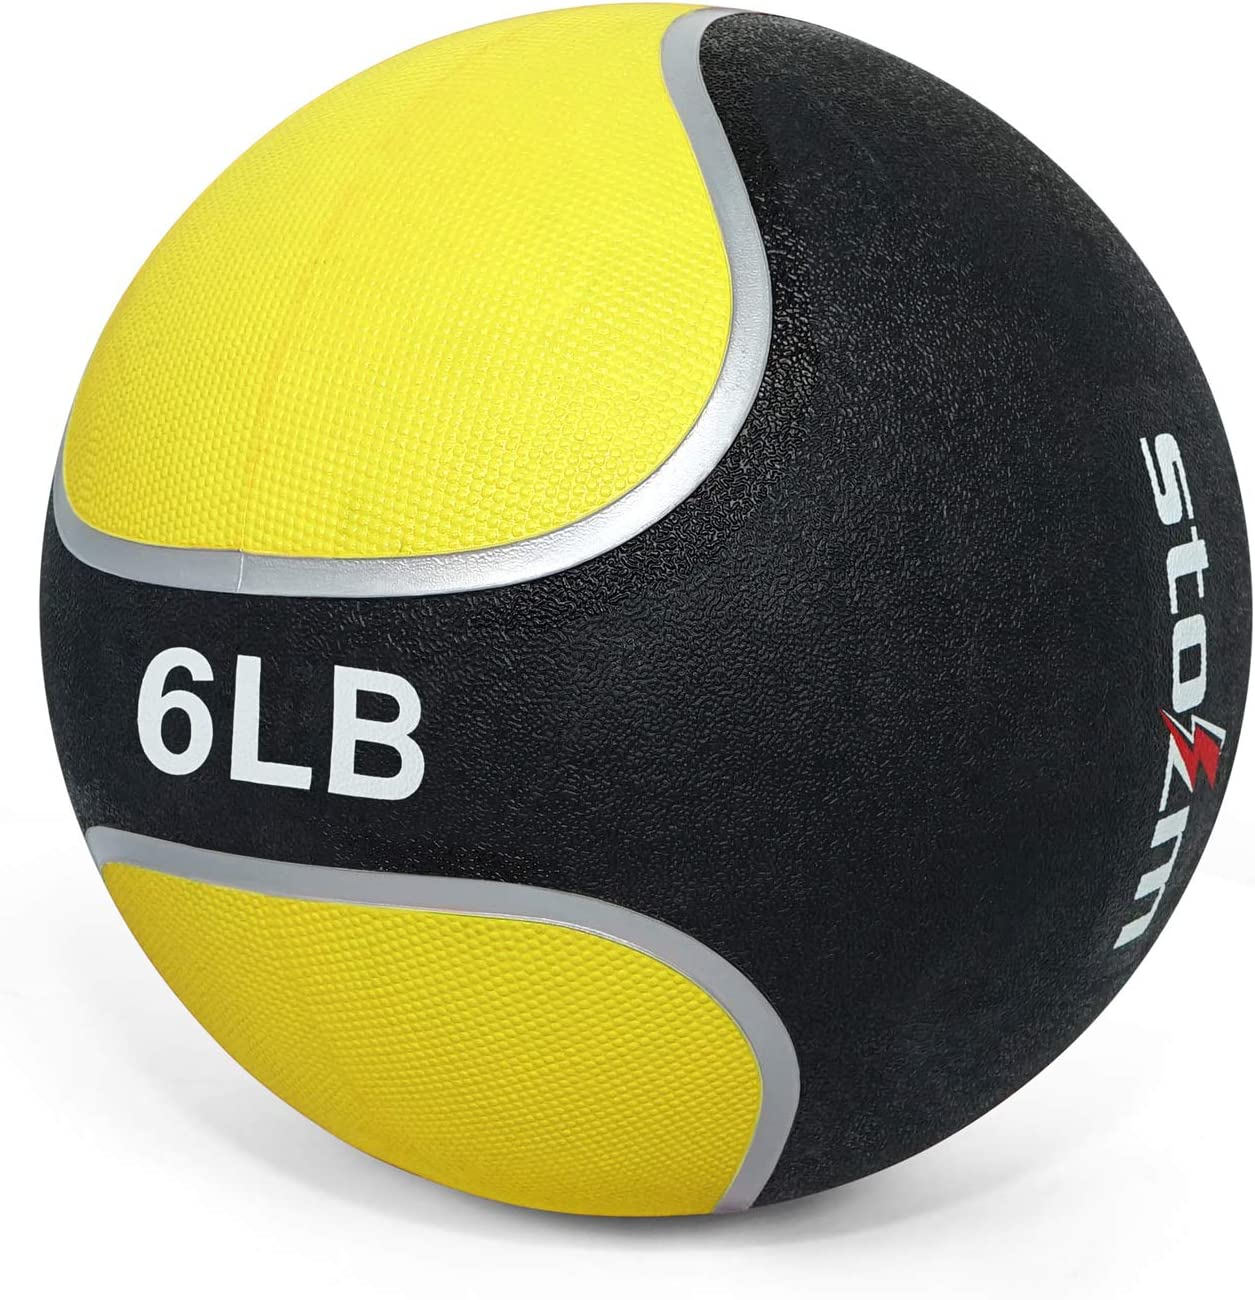 STOZM Medicine Ball/Weighted Ball – Exercise Weights with Rubber Textured Grip for Fitness, Conditioning and Crossfit Workout (6lbs, Yellow) : Sports & Outdoors